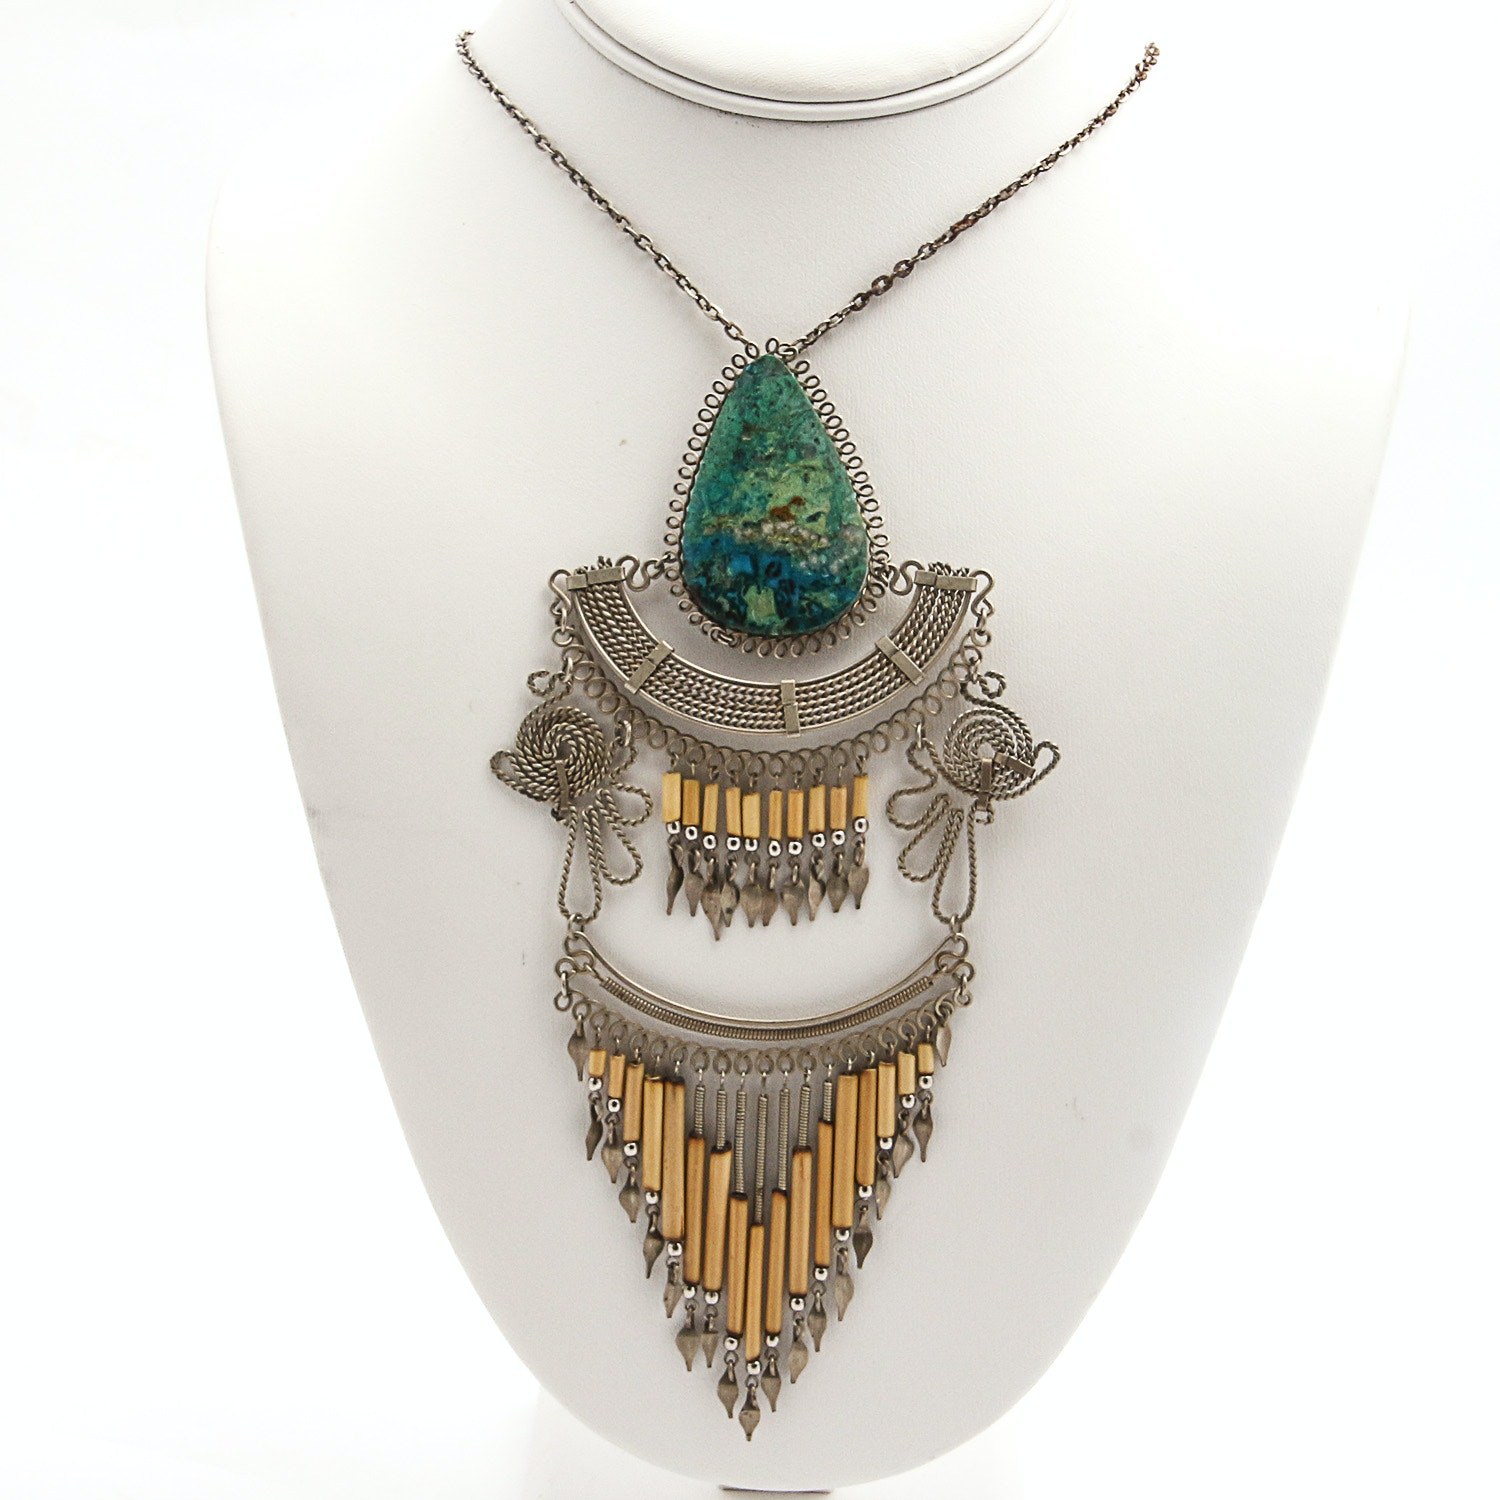 Egyptian Revival Necklace with Eilat Stone